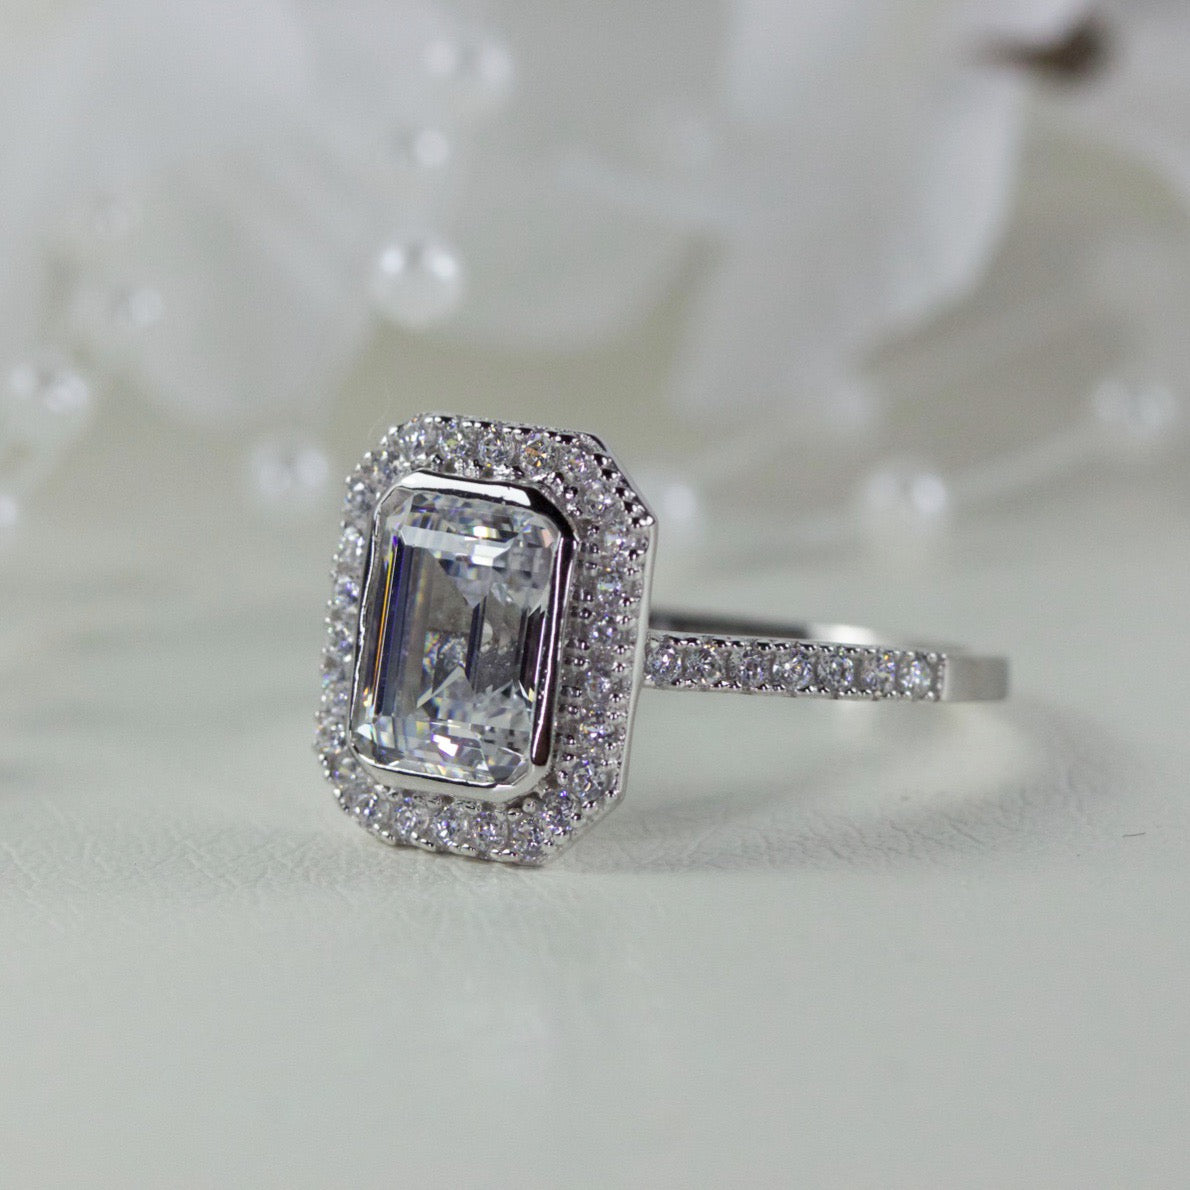 375ad9dae Halo 1.50 Carat Emerald Cut Cubic Zirconia Engagement Ring – Alida ...